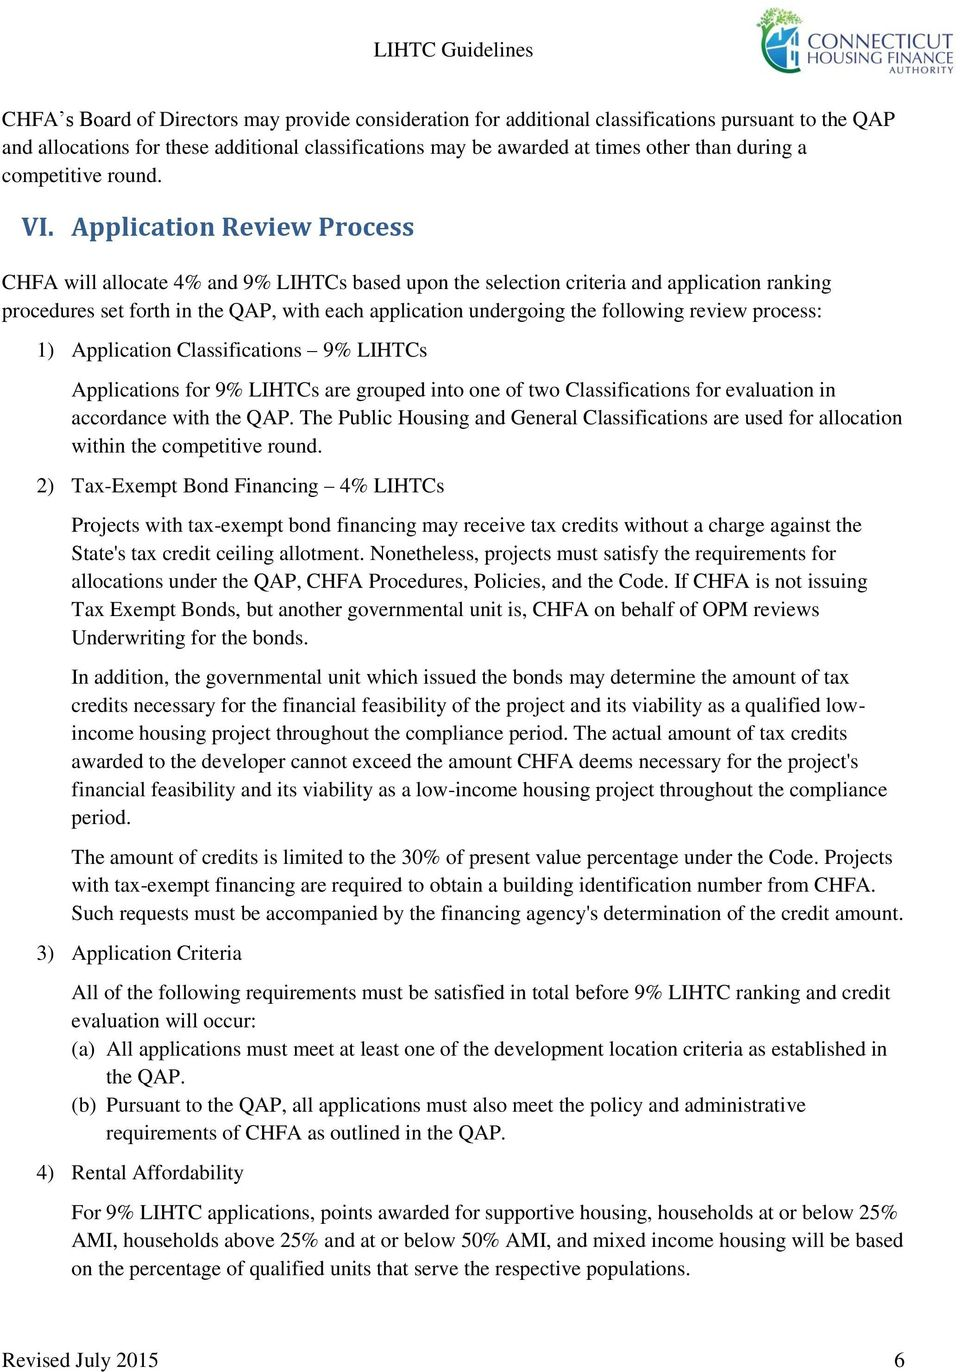 Application Review Process CHFA will allocate 4% and 9% LIHTCs based upon the selection criteria and application ranking procedures set forth in the QAP, with each application undergoing the